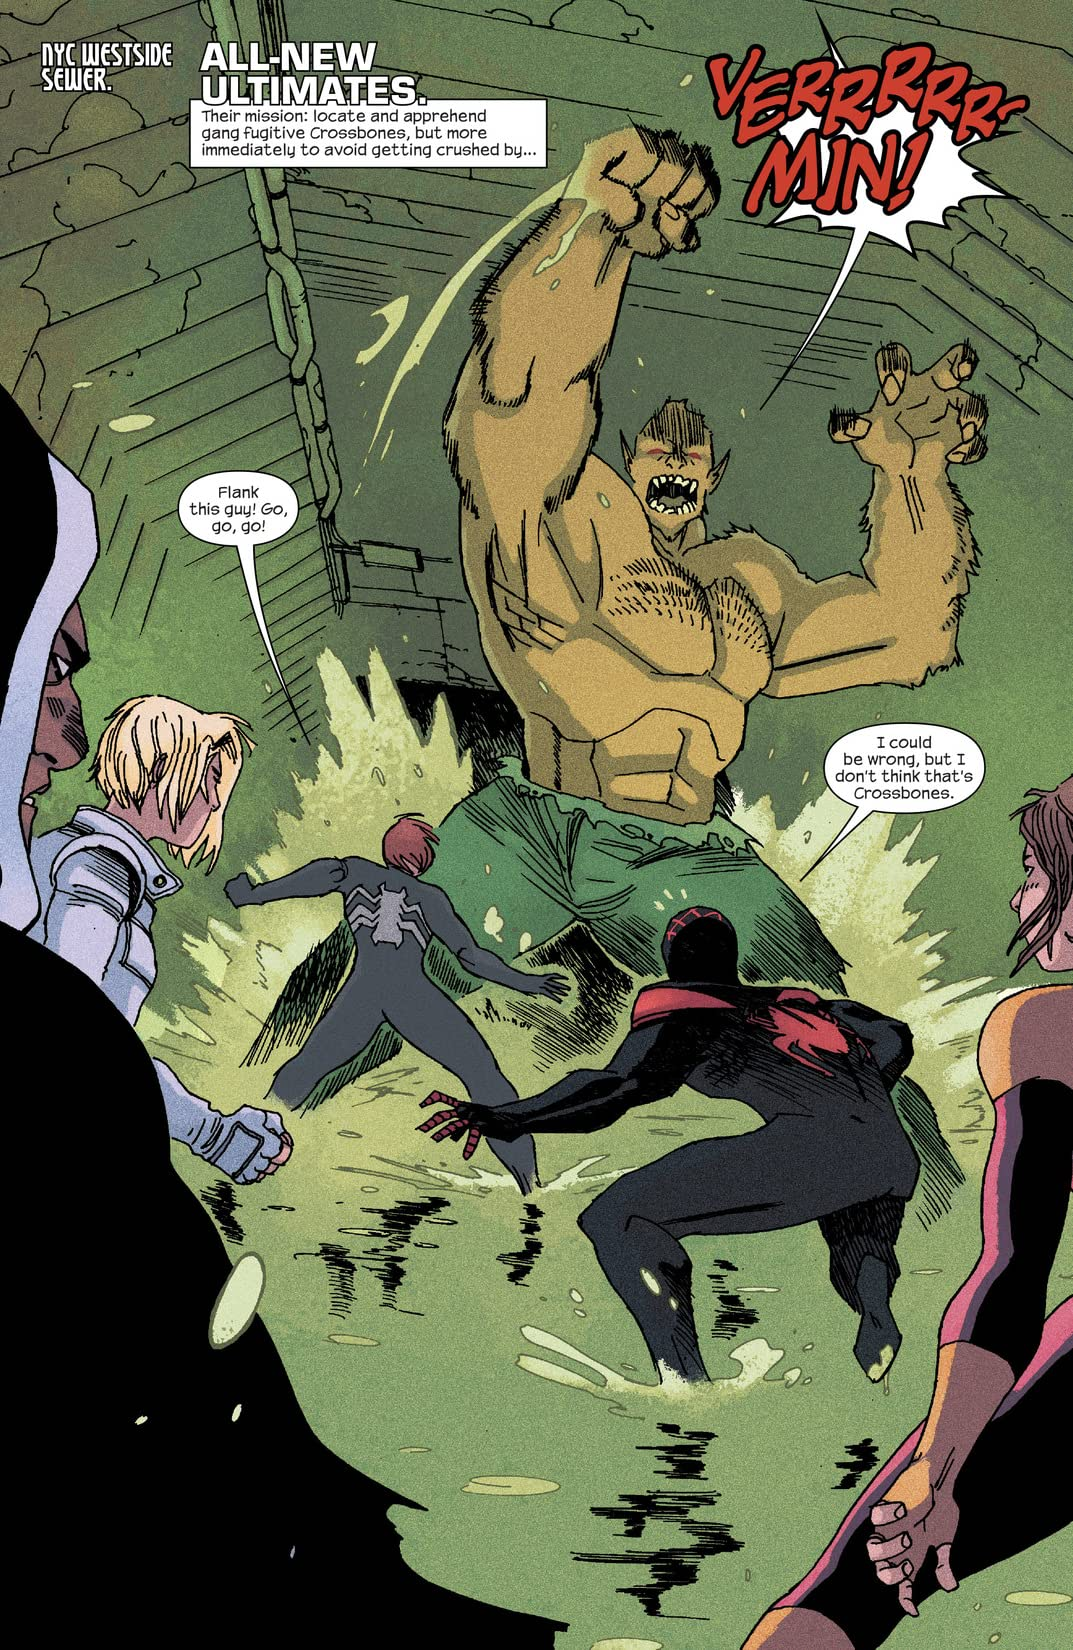 All-New Ultimates (2014-2015) #7